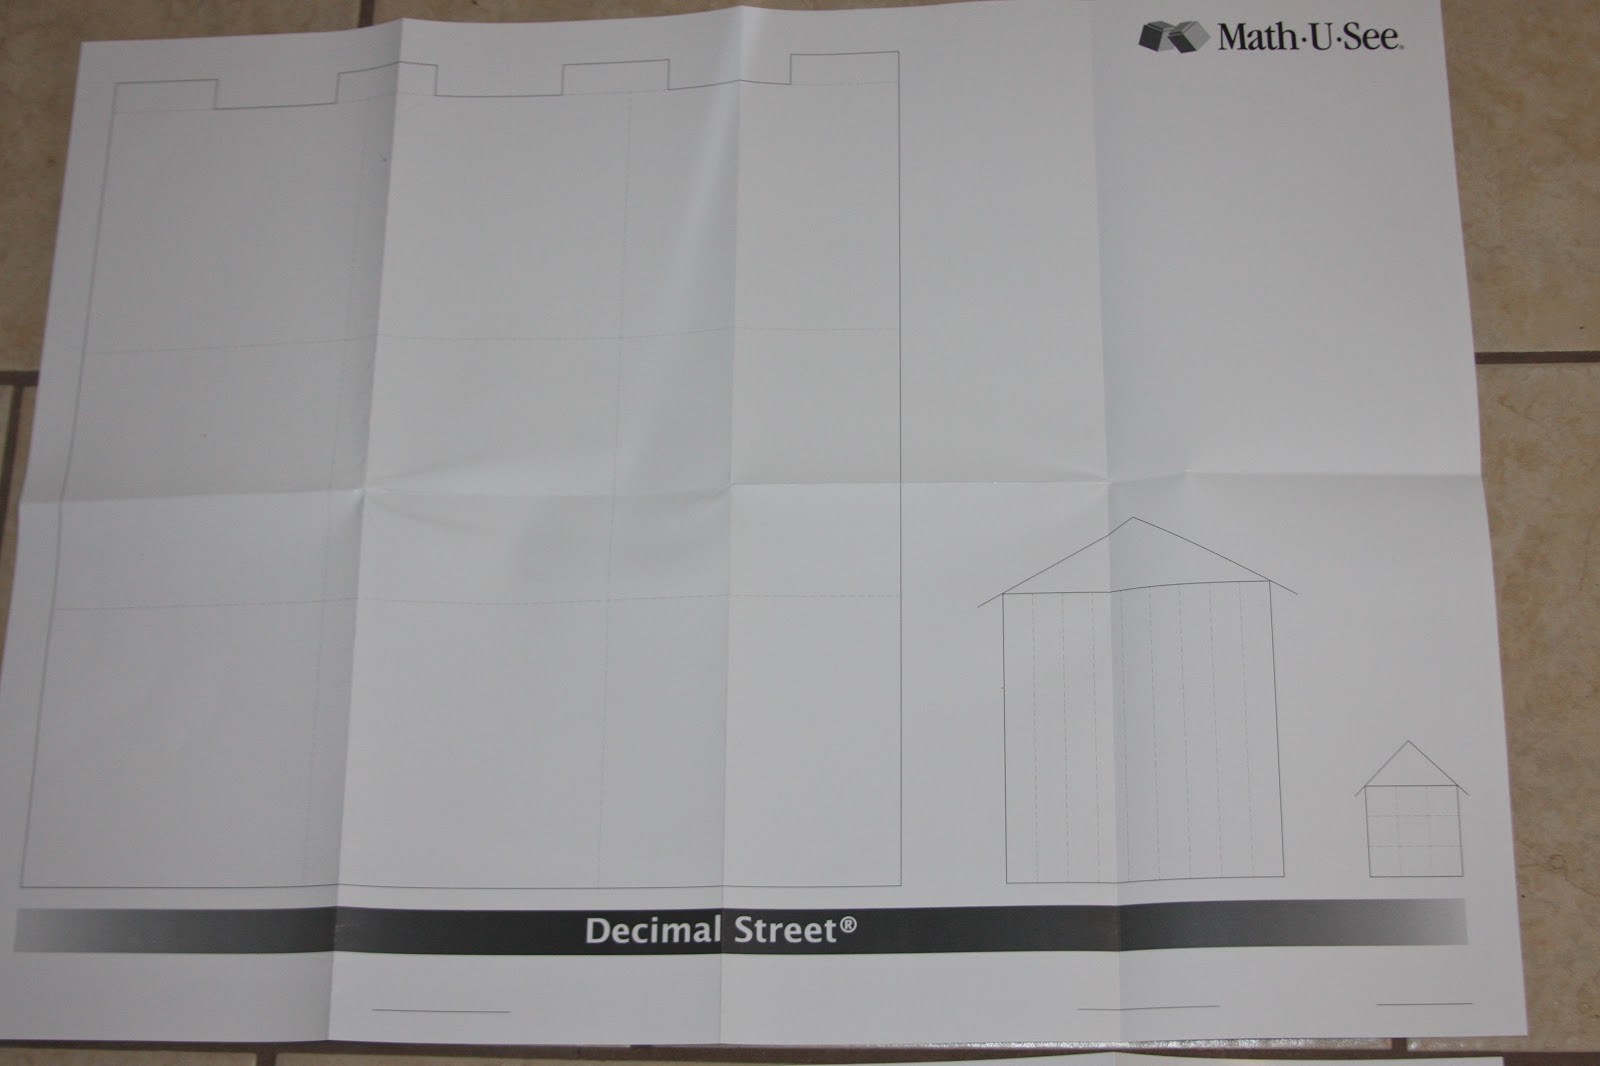 math worksheet : a learning journey schoolhouse crew review math u see beta : Math U See Worksheet Generator